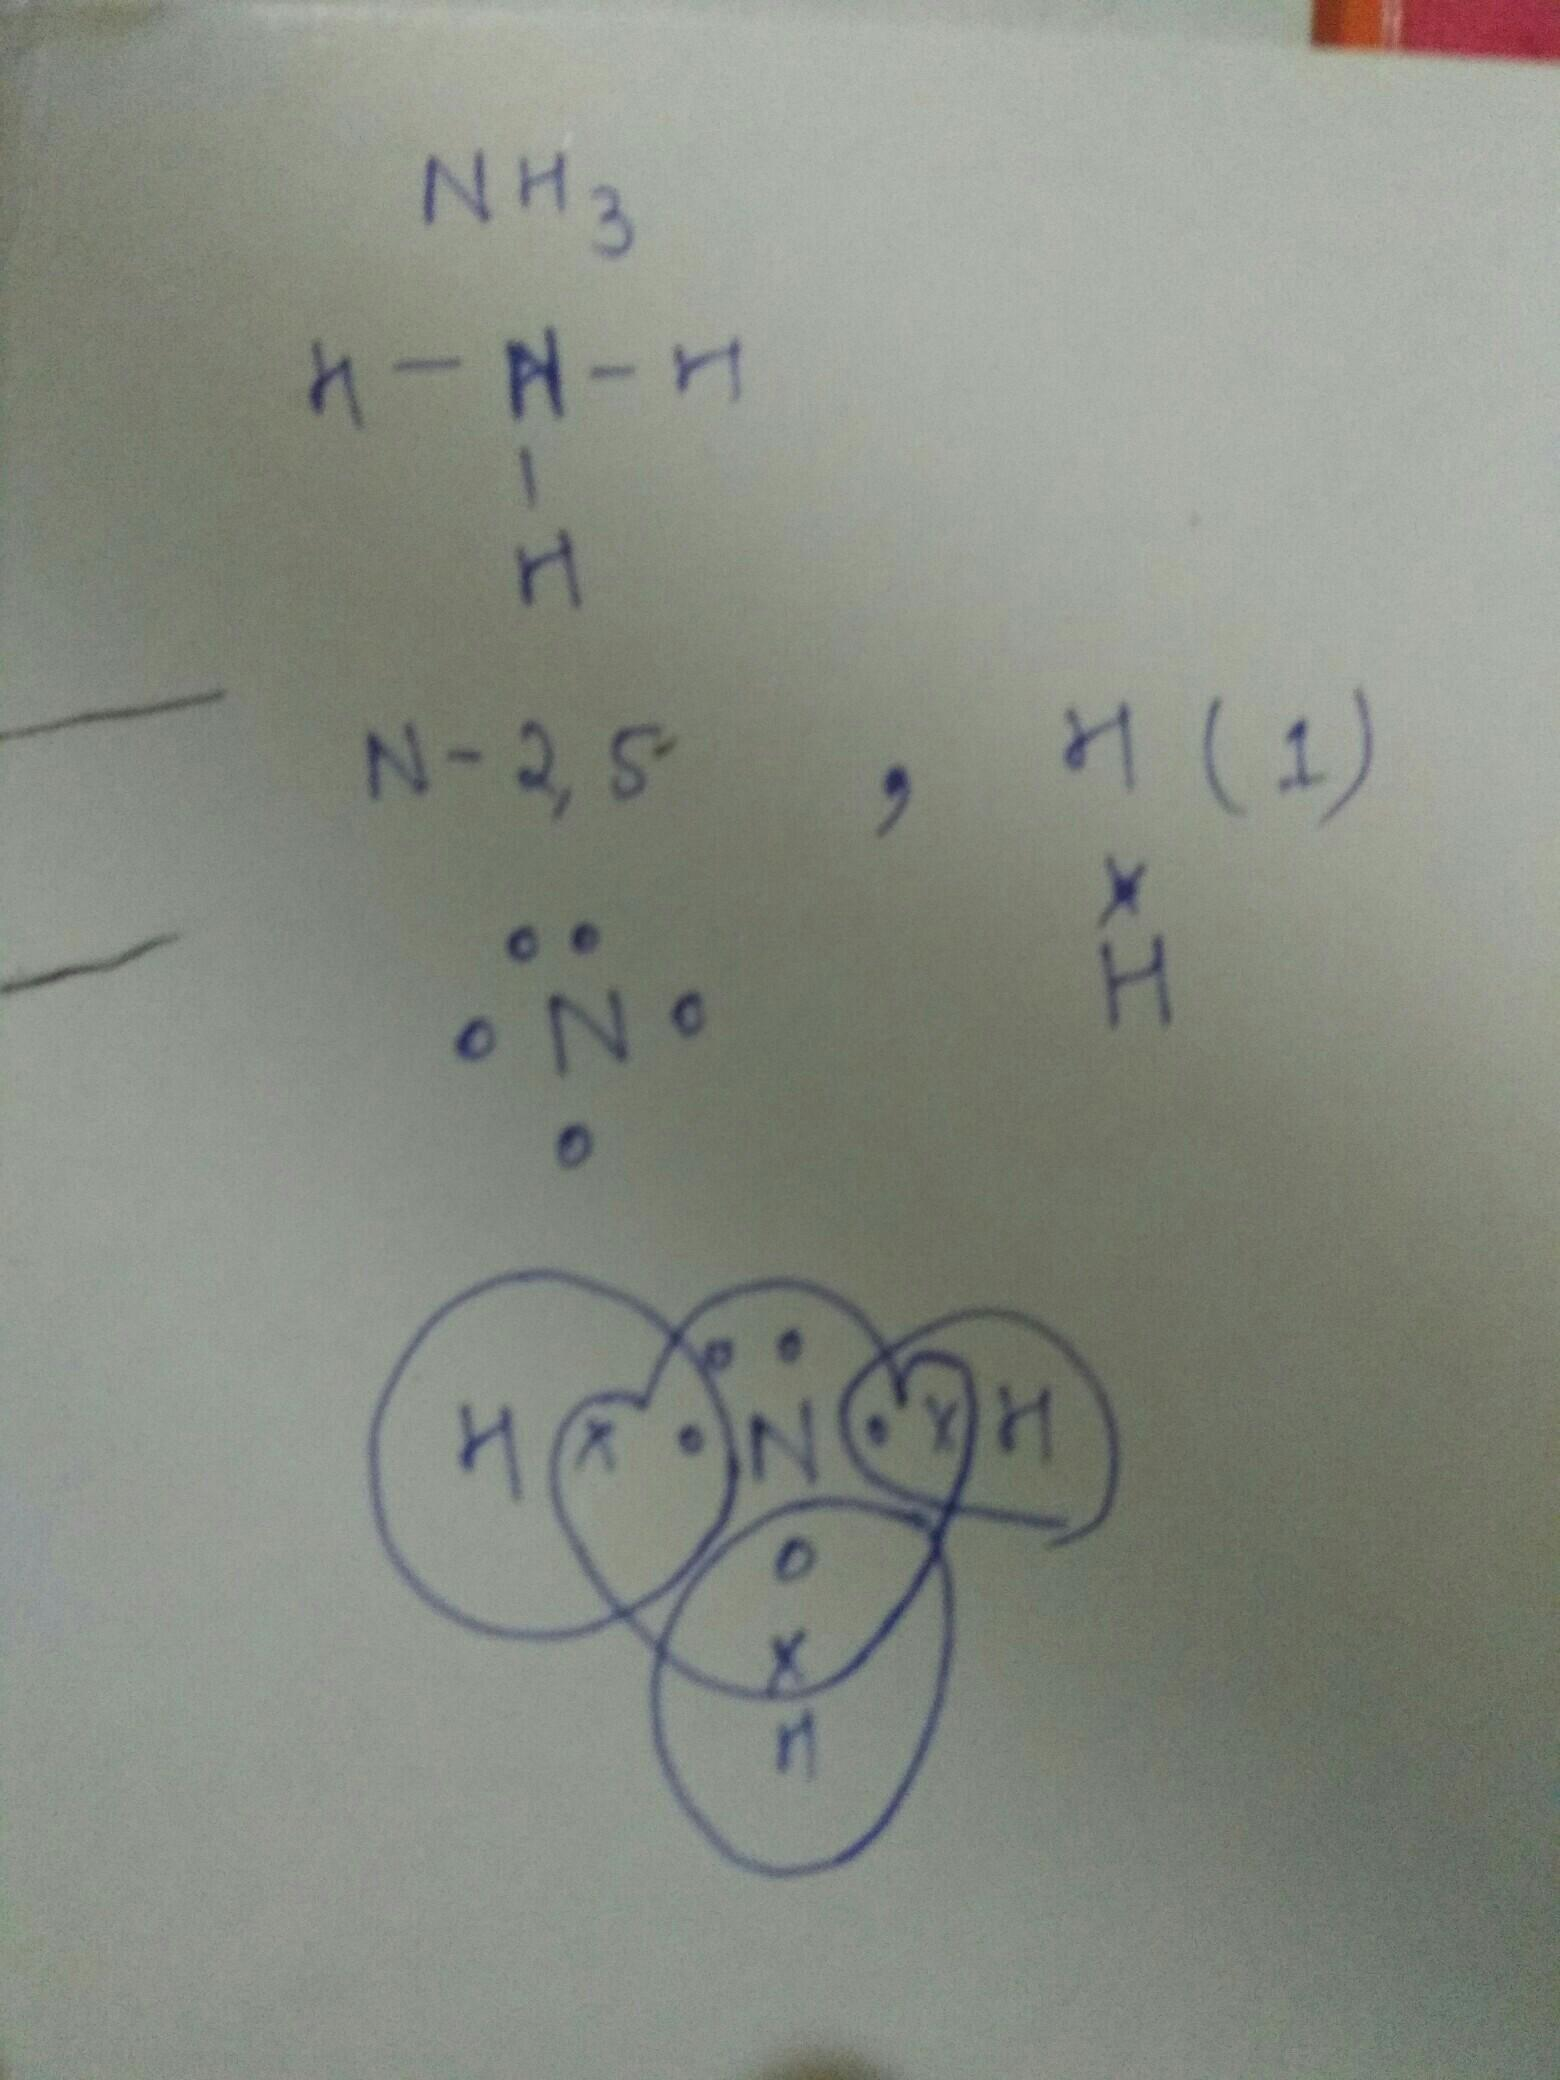 Draw The Lewis Structure For Nh3 : lewis, structure, Electron, Structure, Ammonia, Molecule, Formation, Ammonium, Brainly.in